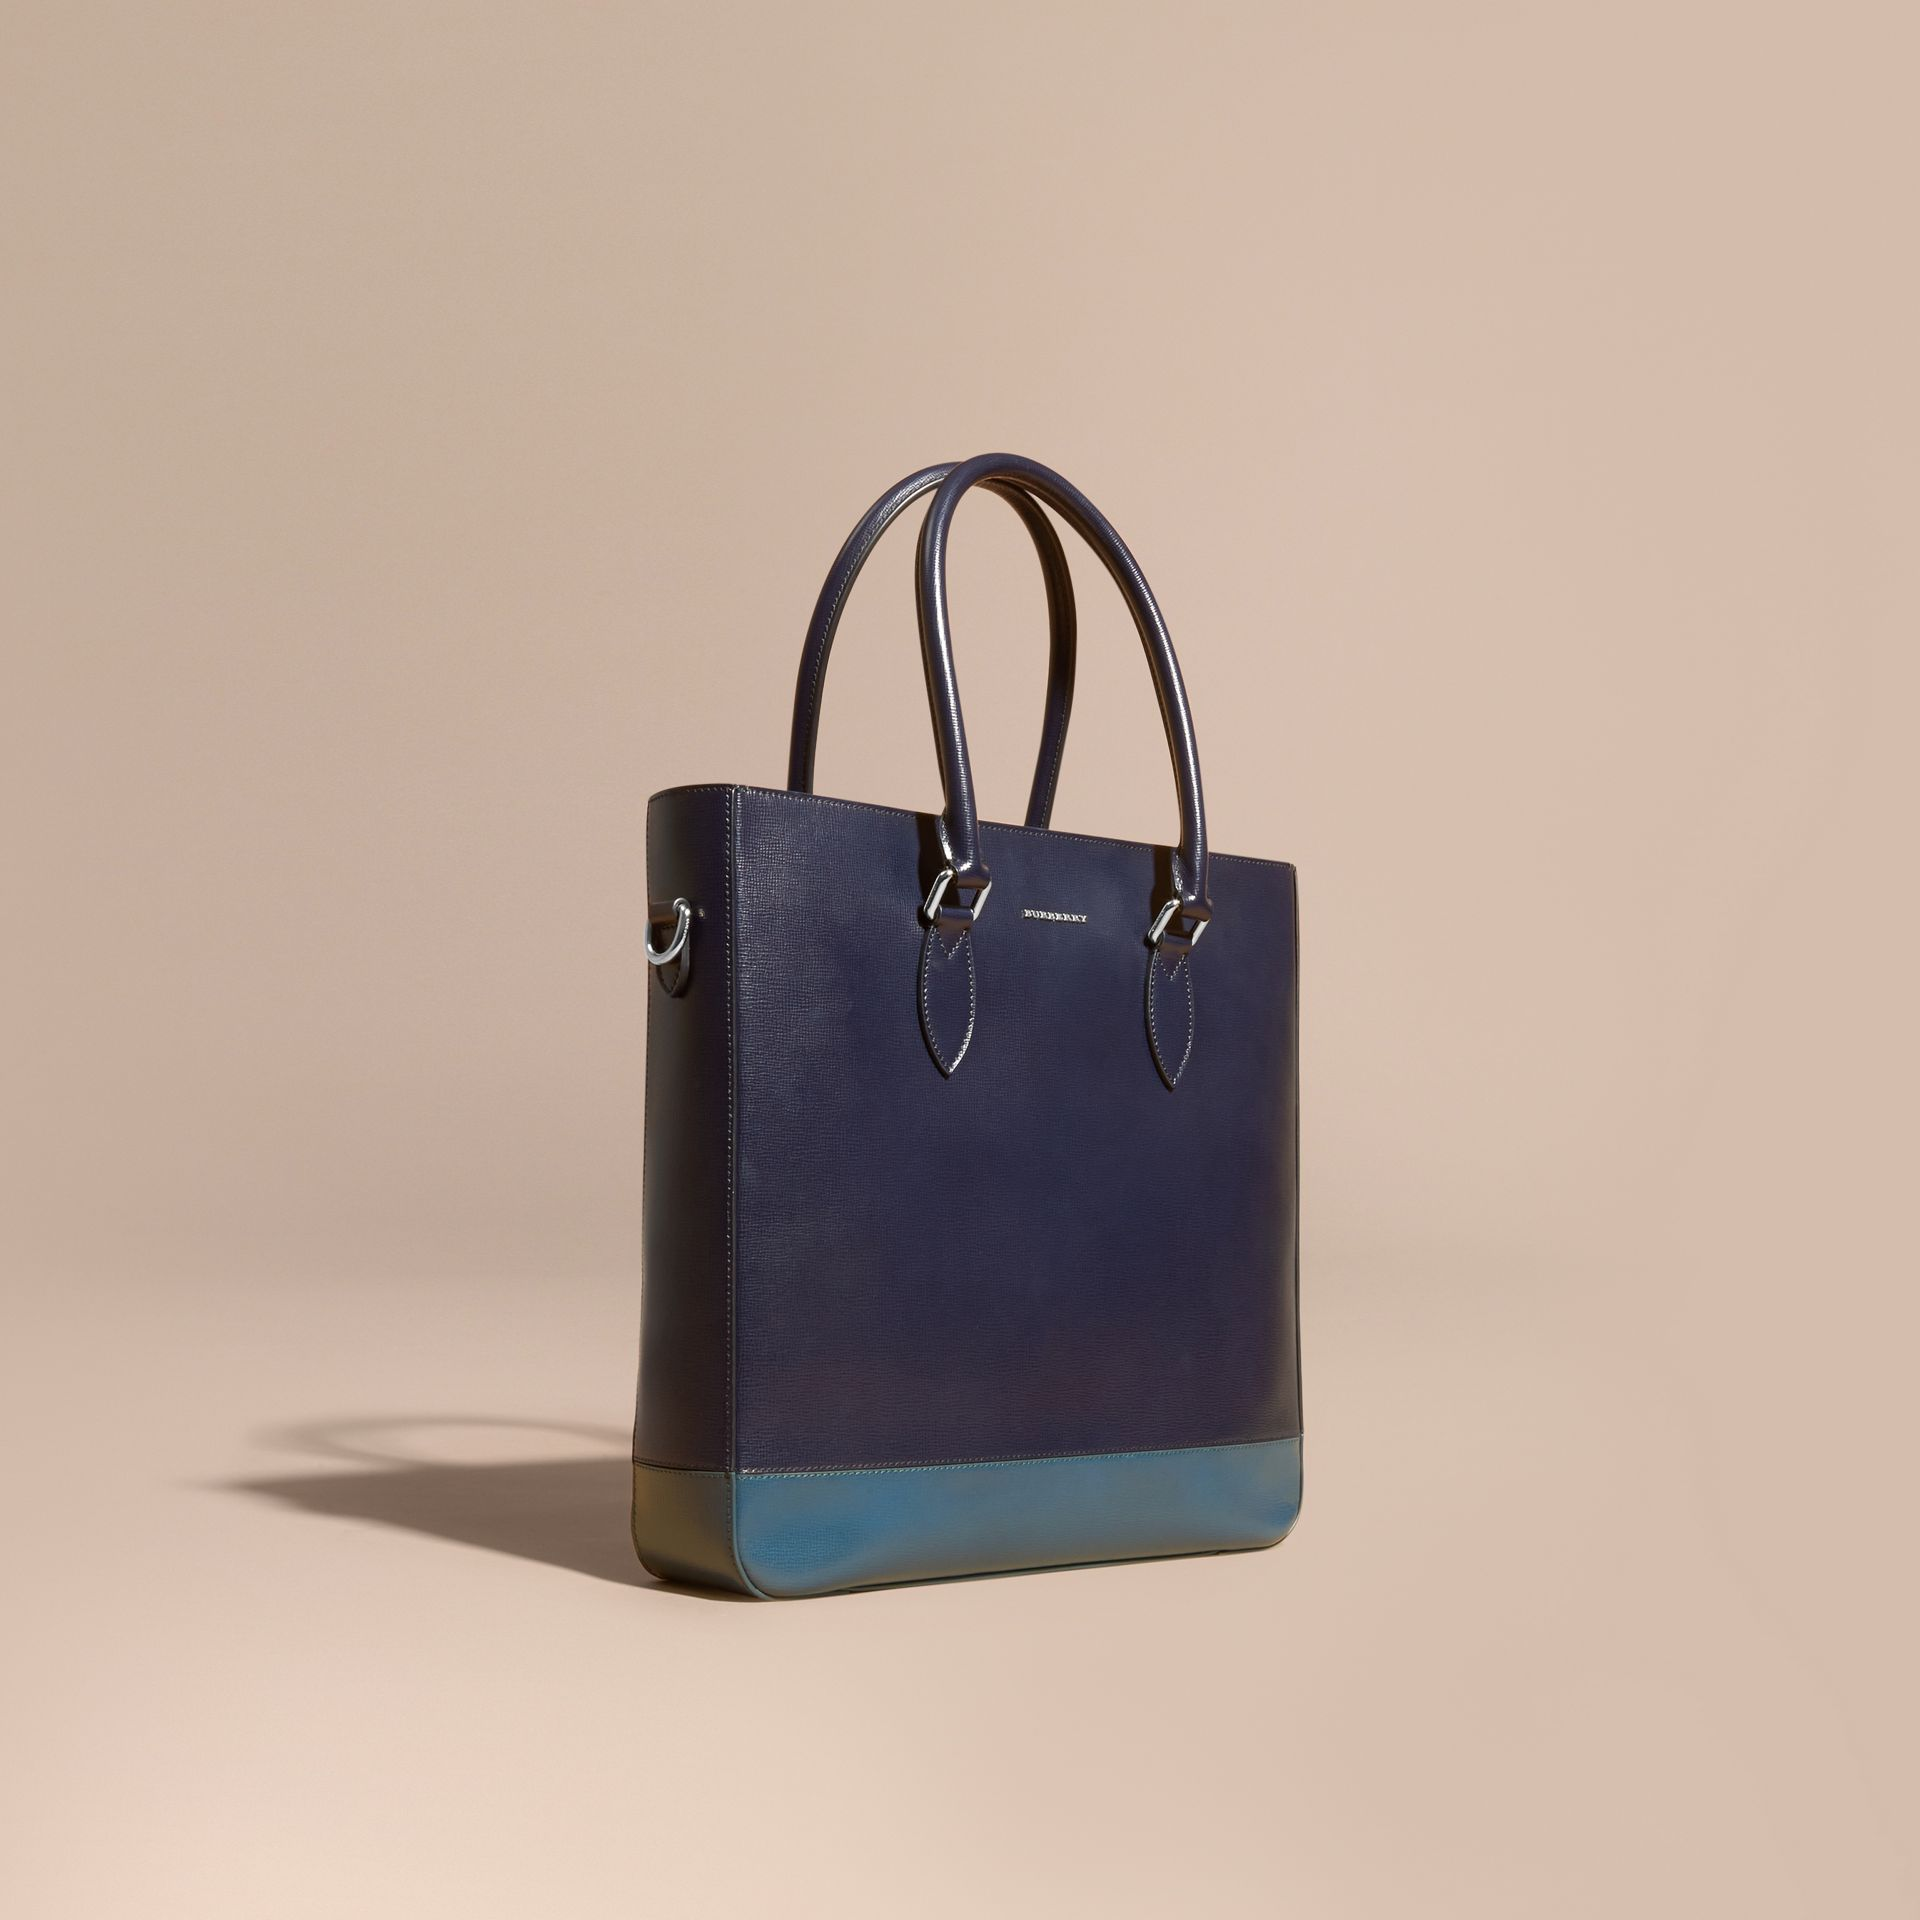 Dark navy/mineral blue Panelled London Leather Tote Bag Dark Navy/mineral Blue - gallery image 1